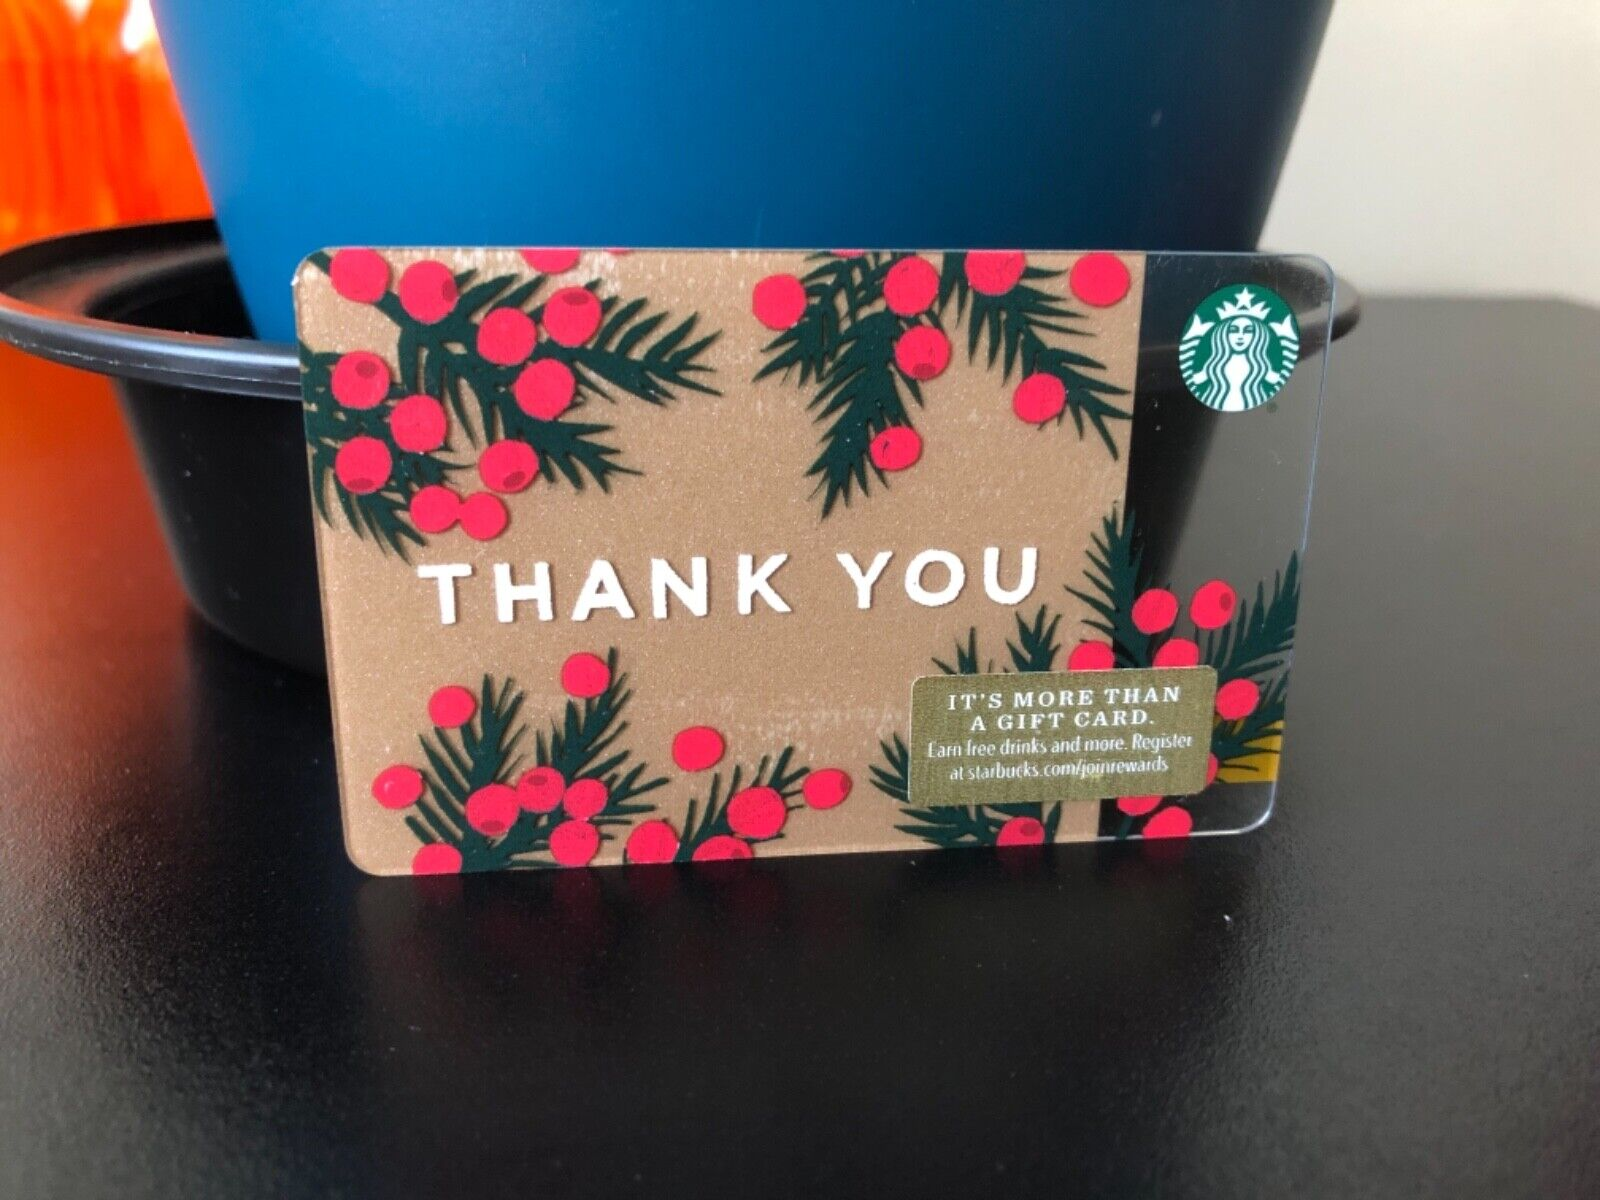 New Reloadable Thank You With Mistletoe Starbucks Gift Card Empty  - $3.25